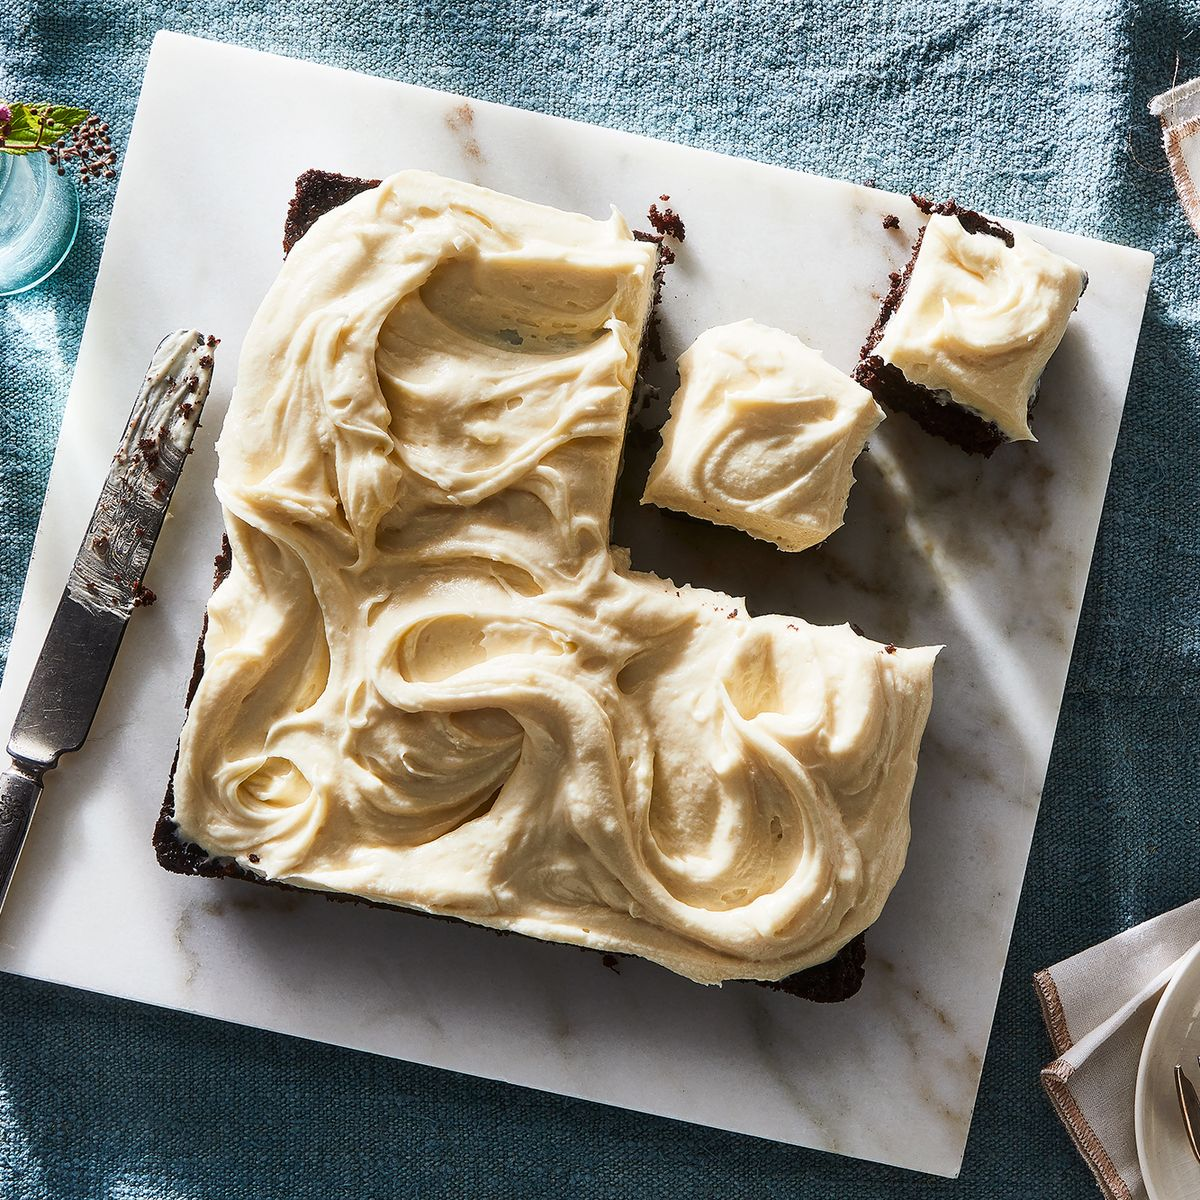 Chocolate-Carrot Snacking Cake With Cream Cheese Frosting